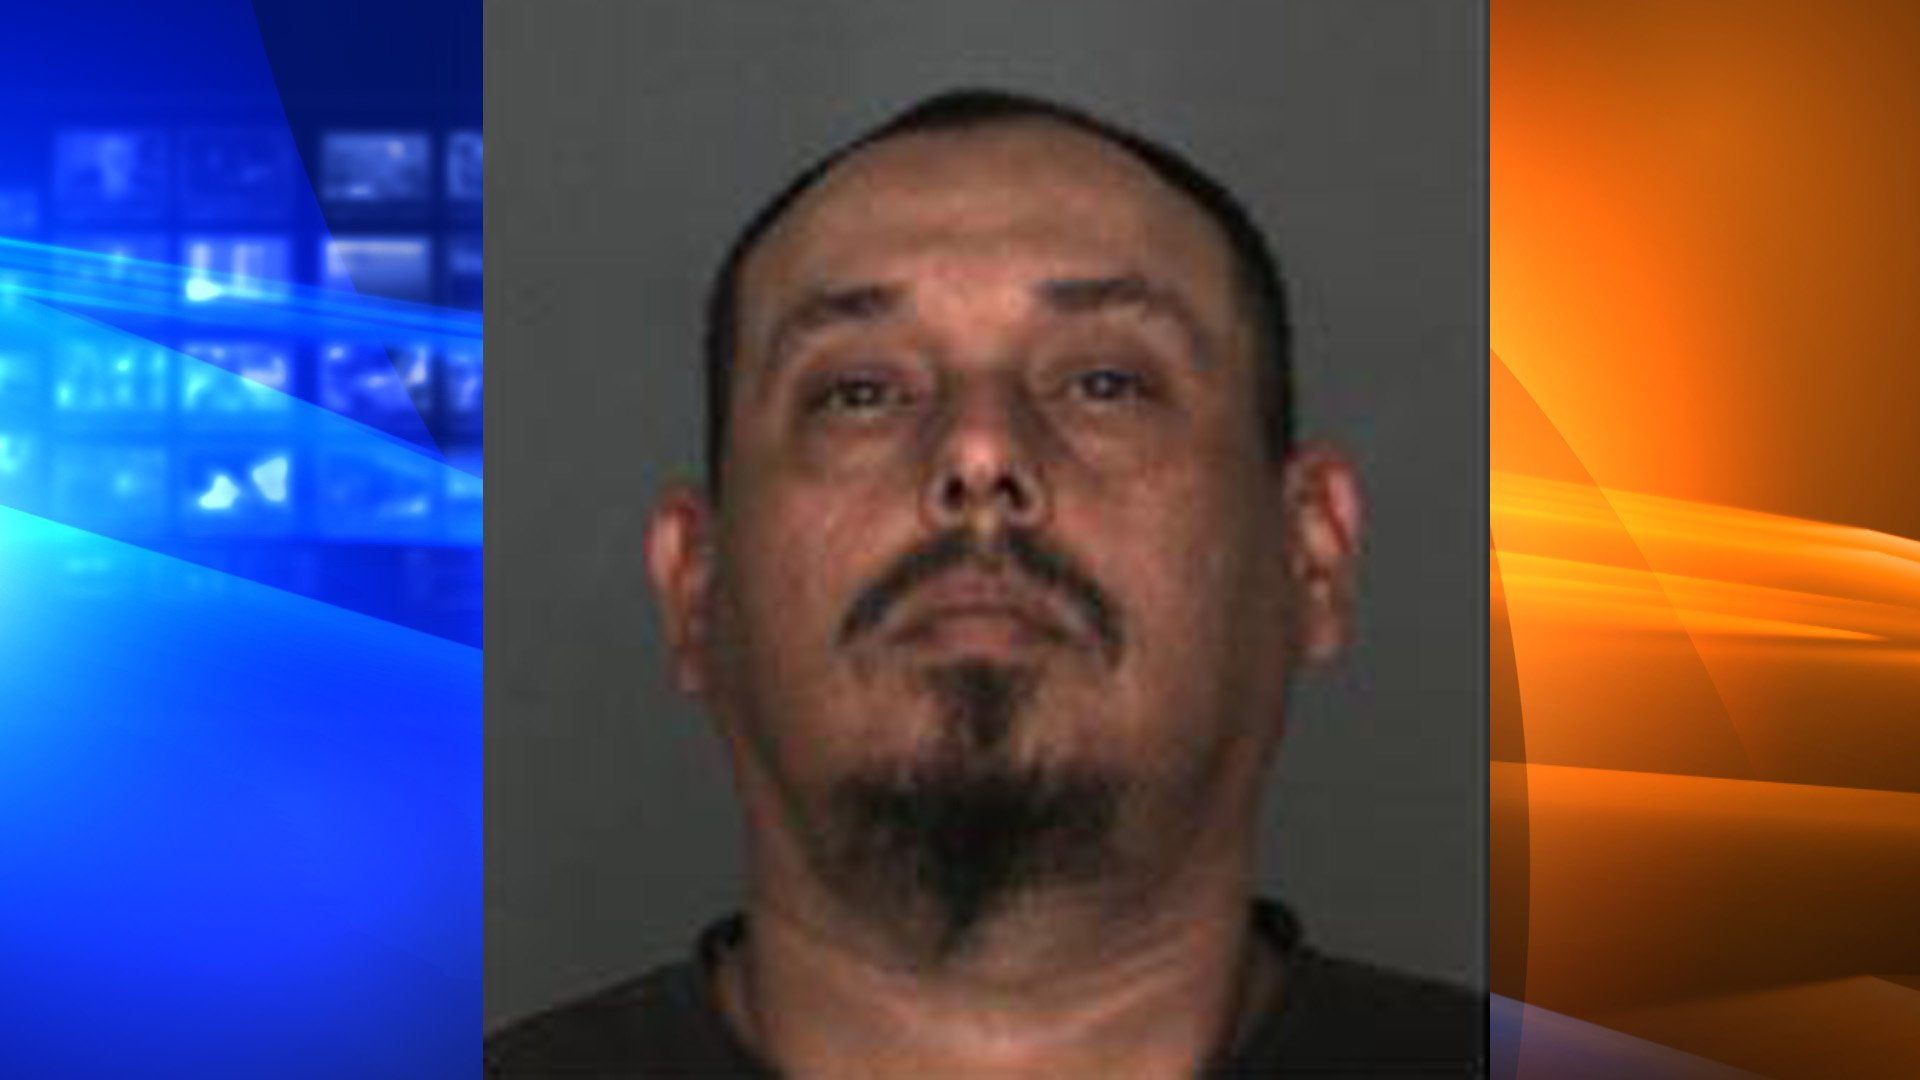 Joseph Ray Barnum, 44, of Salinas, was arrested on Feb. 20, 2020, on charges of continuous sexual abuse of a minor. (Credit: San Bernardino County Sheriff-Coroner Department)